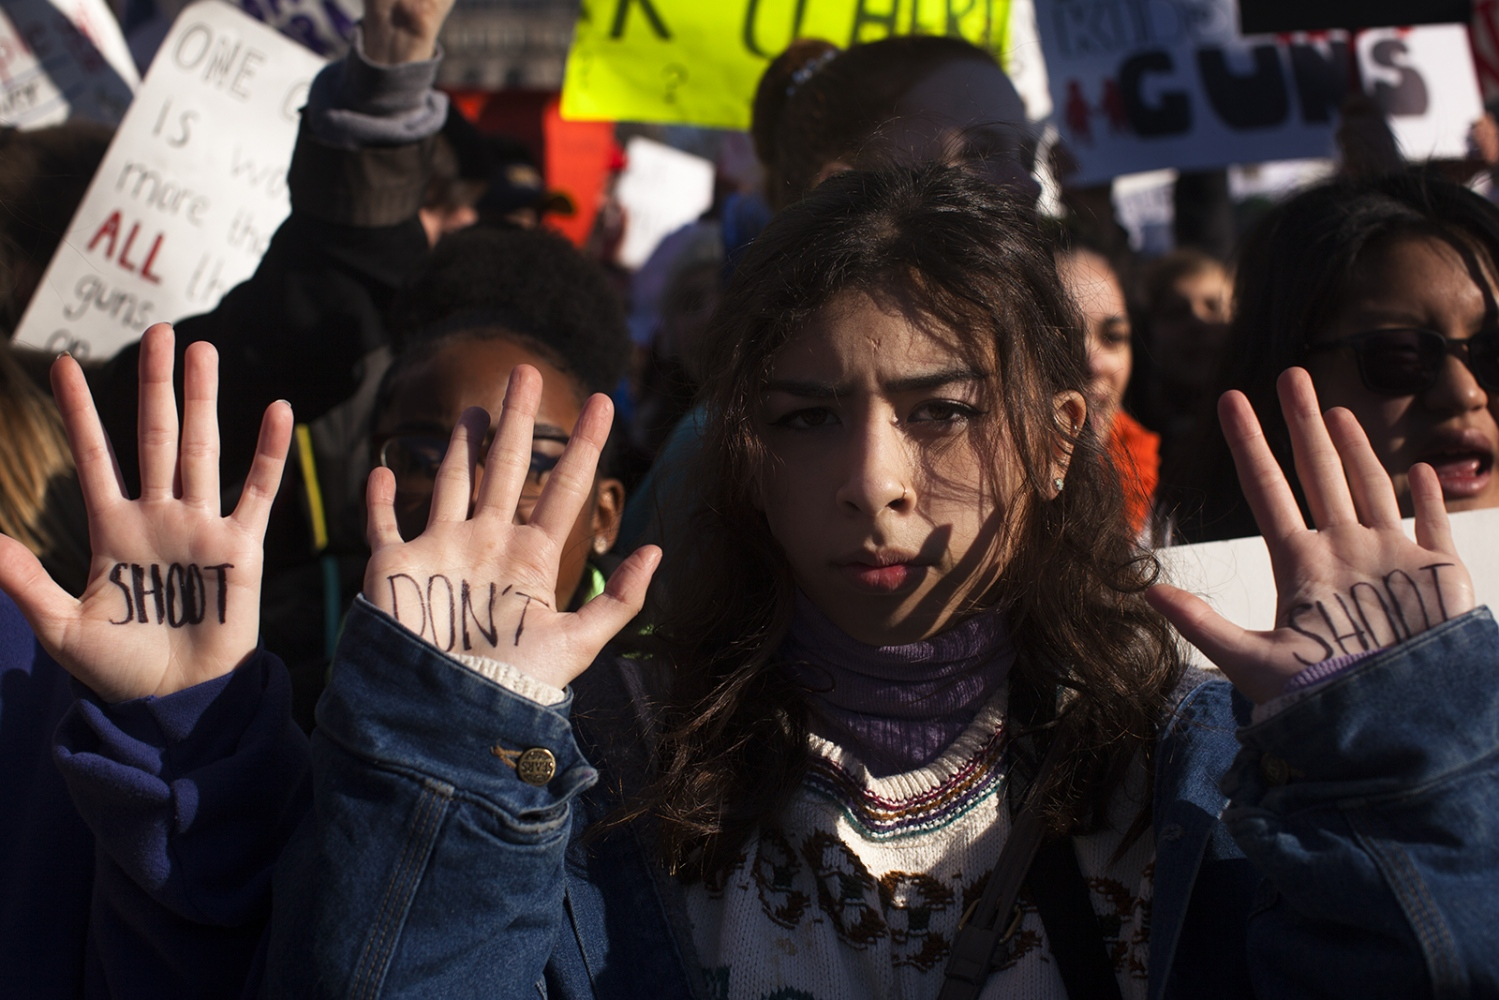 Students from the Washington D.C. metro area gather in front of the White House on March, 14th to protest gun violence.